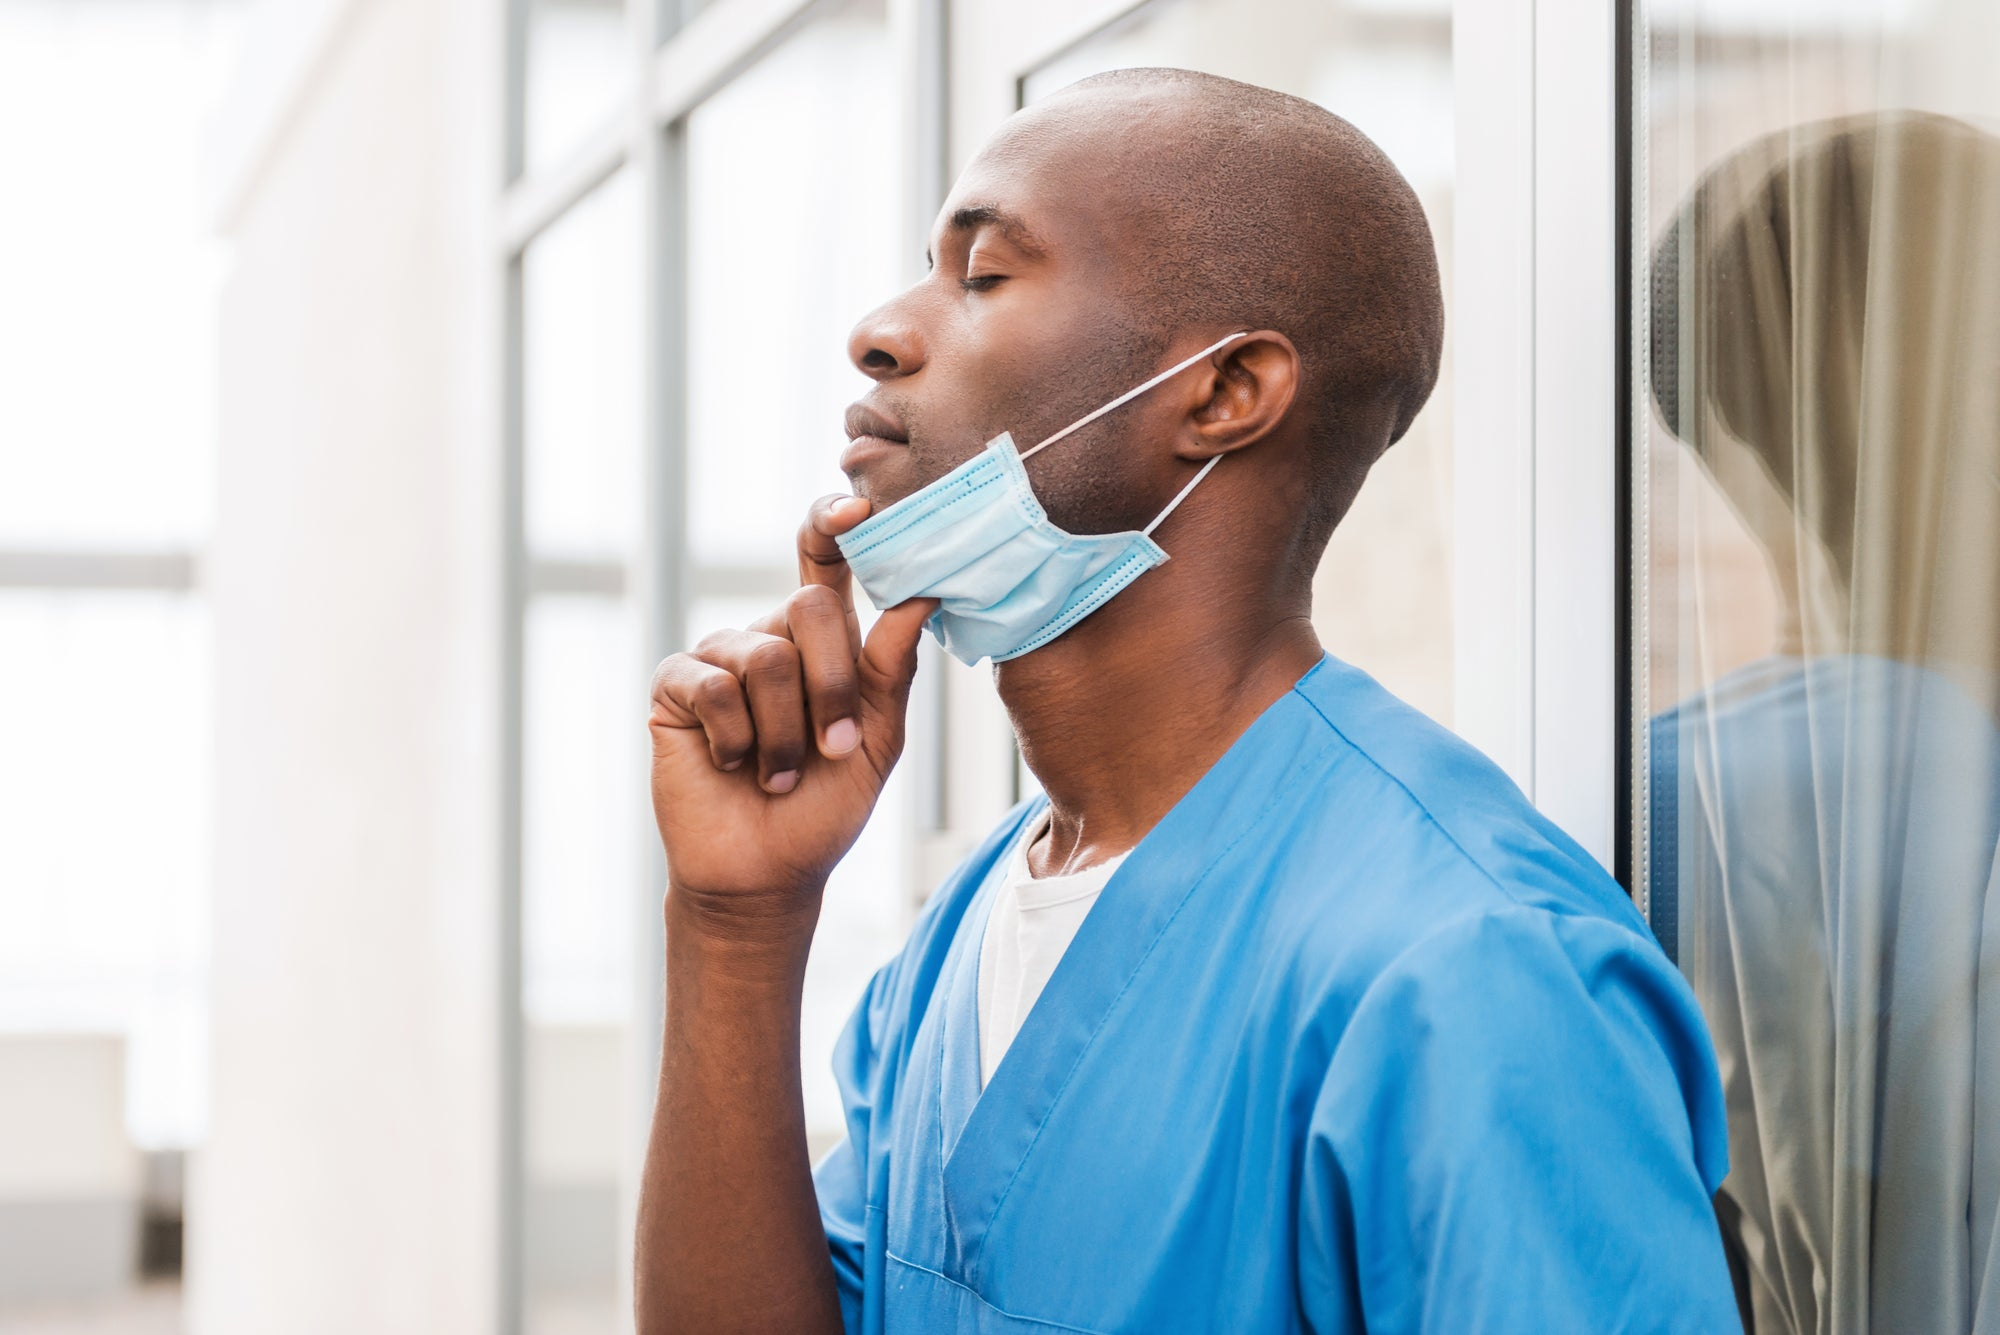 A surgeon in scrubs pulling a mask off their face